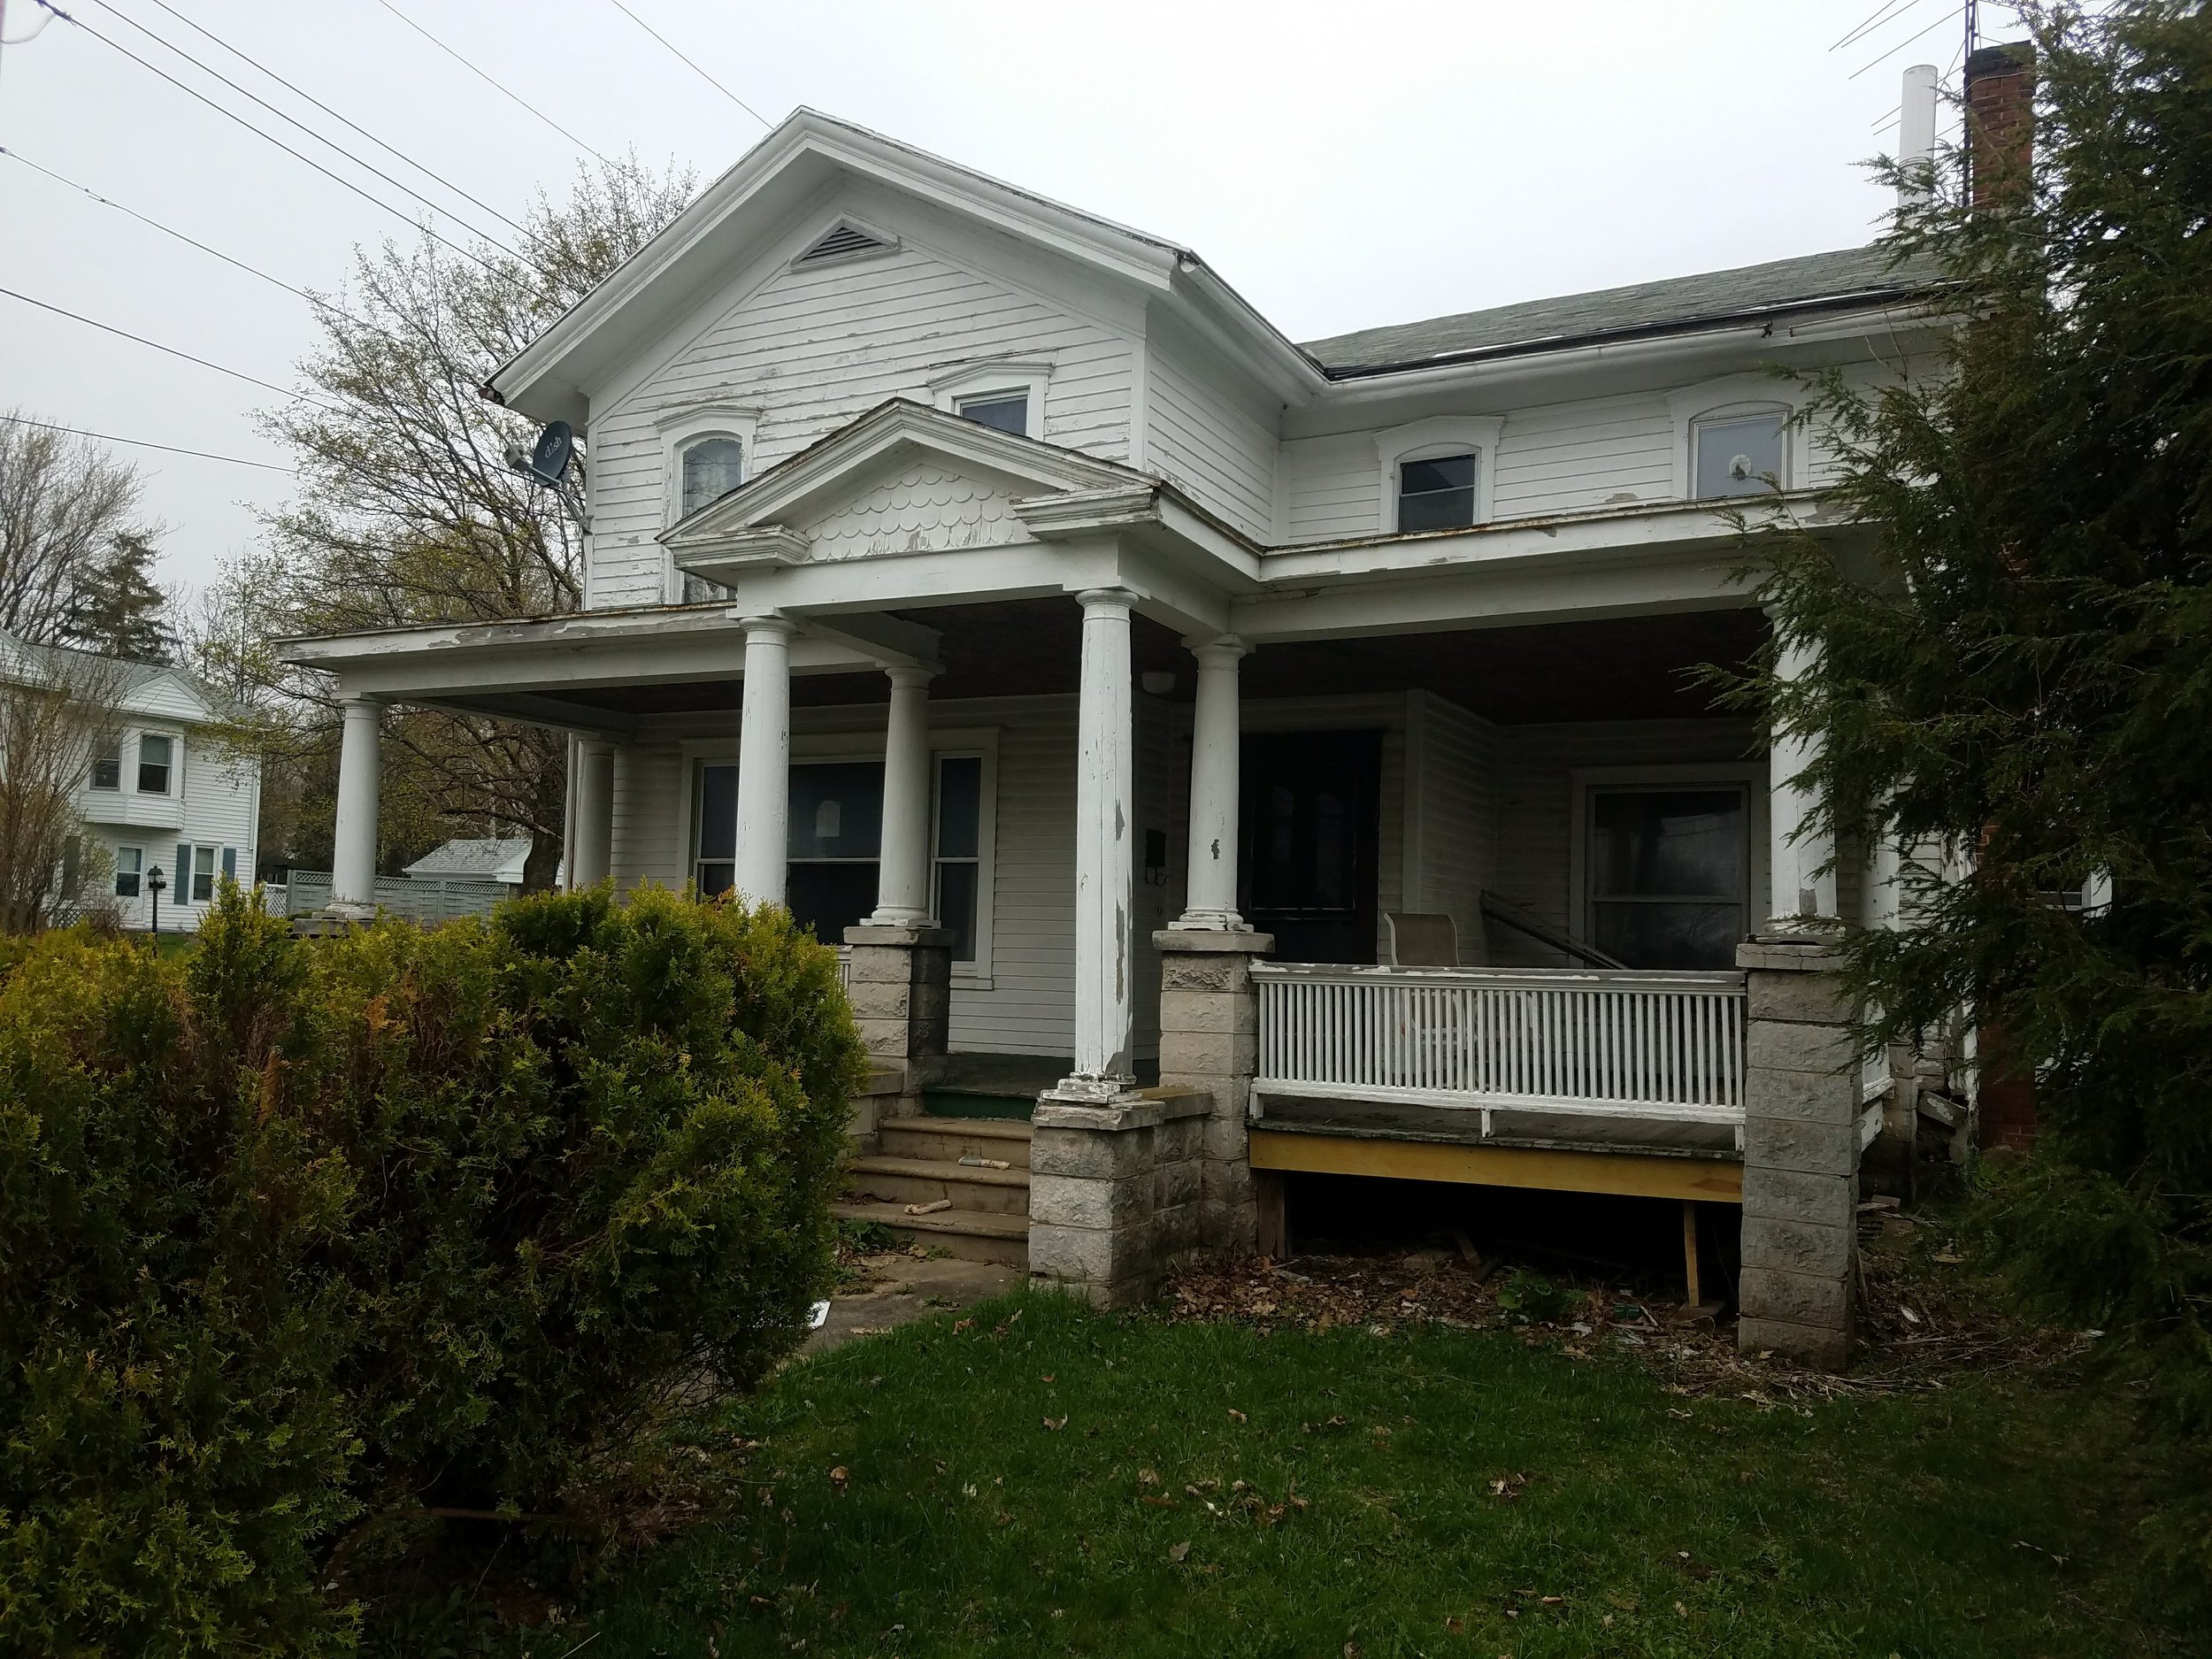 61 W Genesee St, Clyde, NY 14433